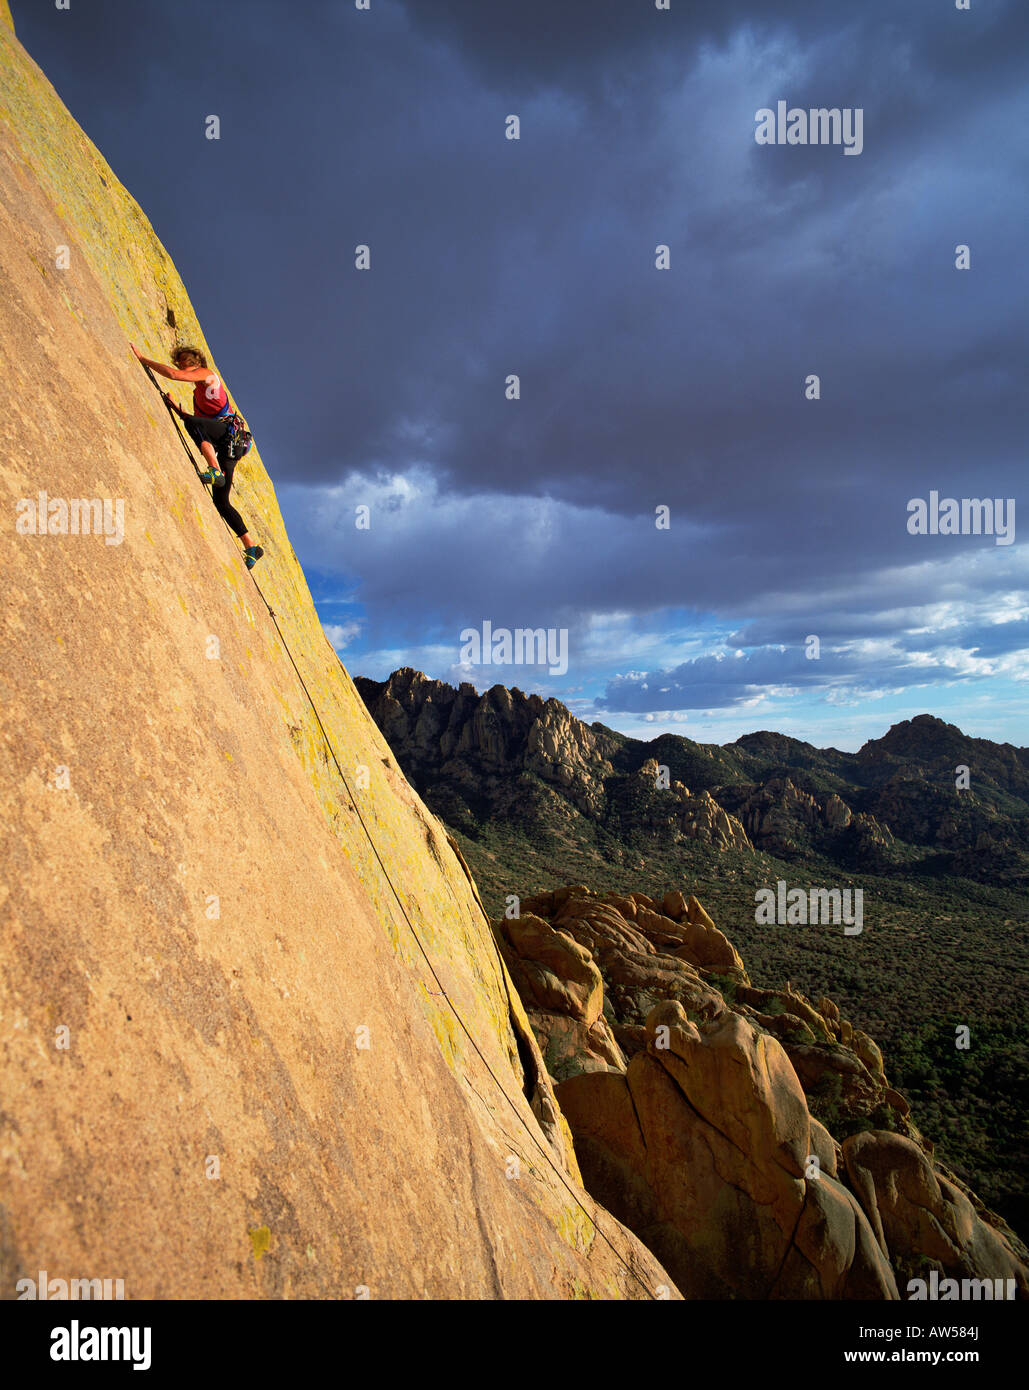 Climber on 'War Paint', Cochise Stronghold - Stock Image